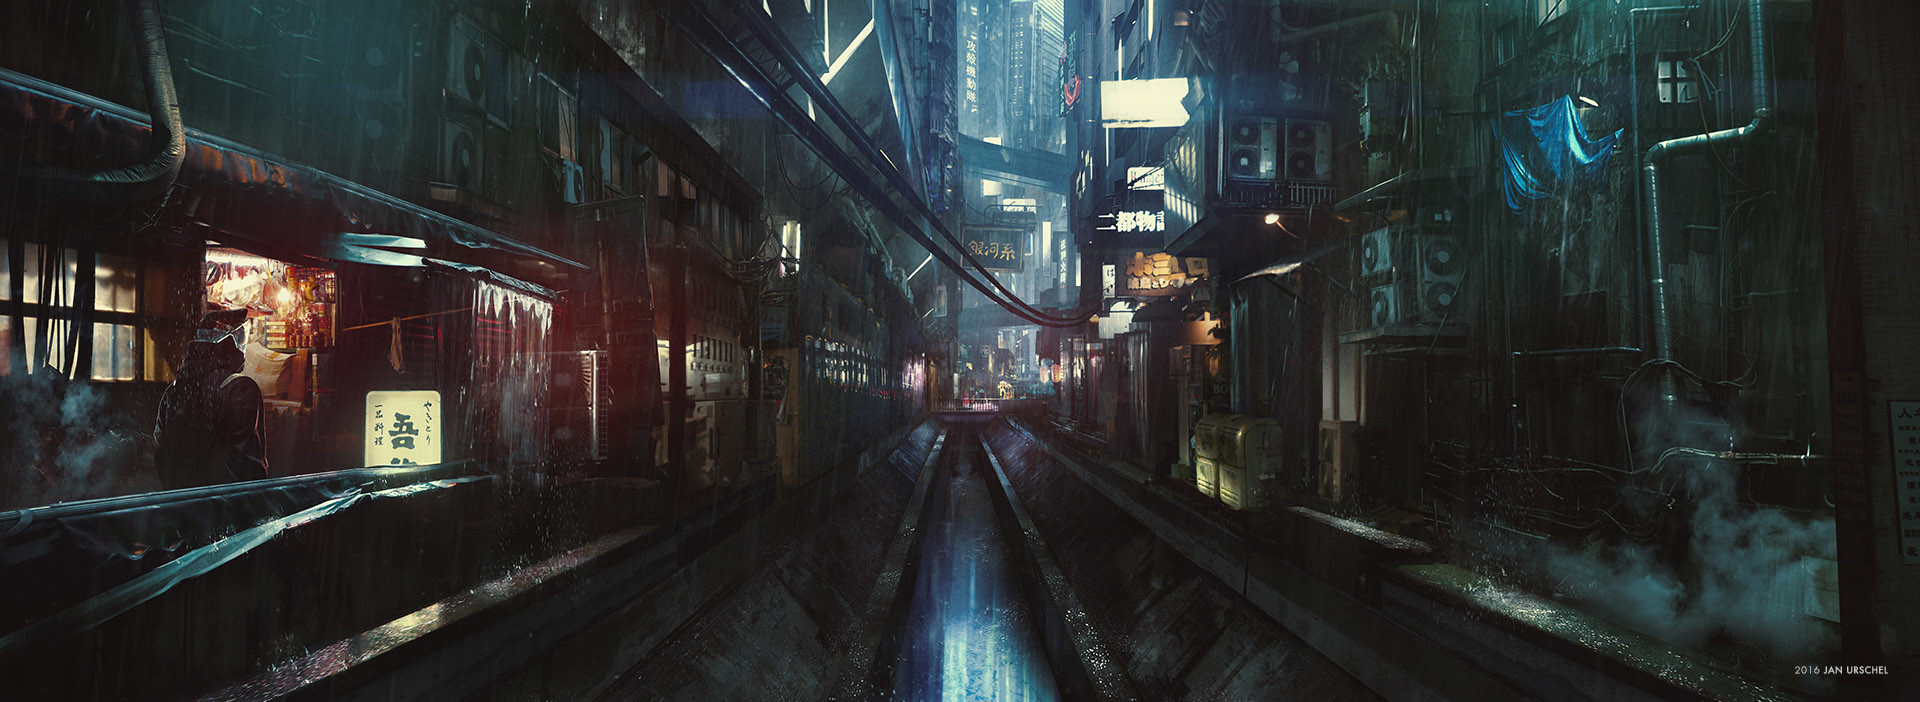 Ghost in the Shell Concept Art by Jan Urschel